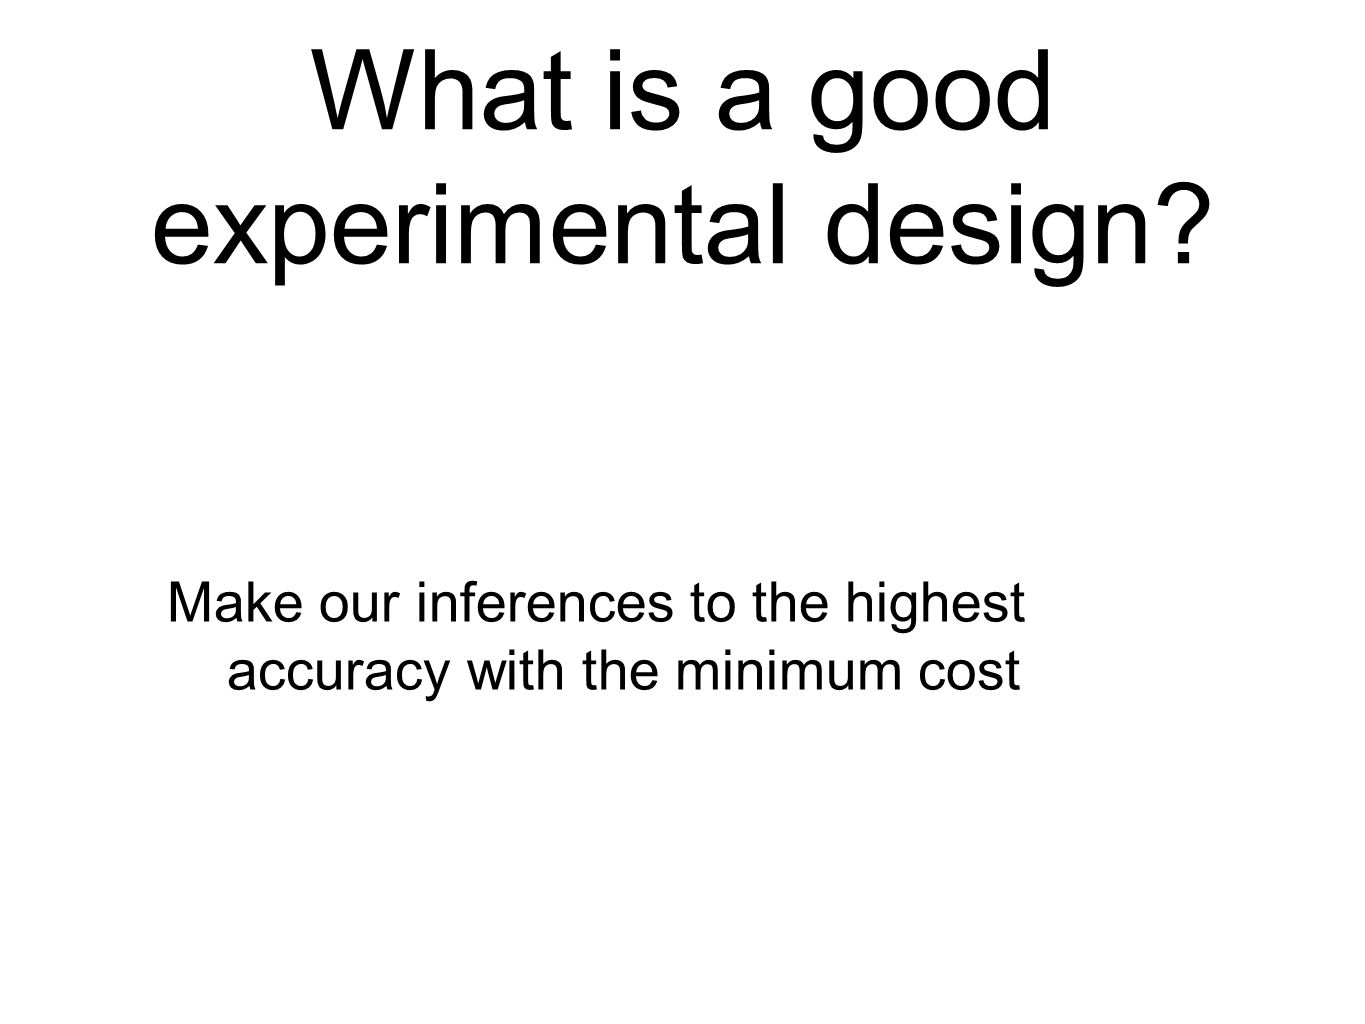 What is a good experimental design